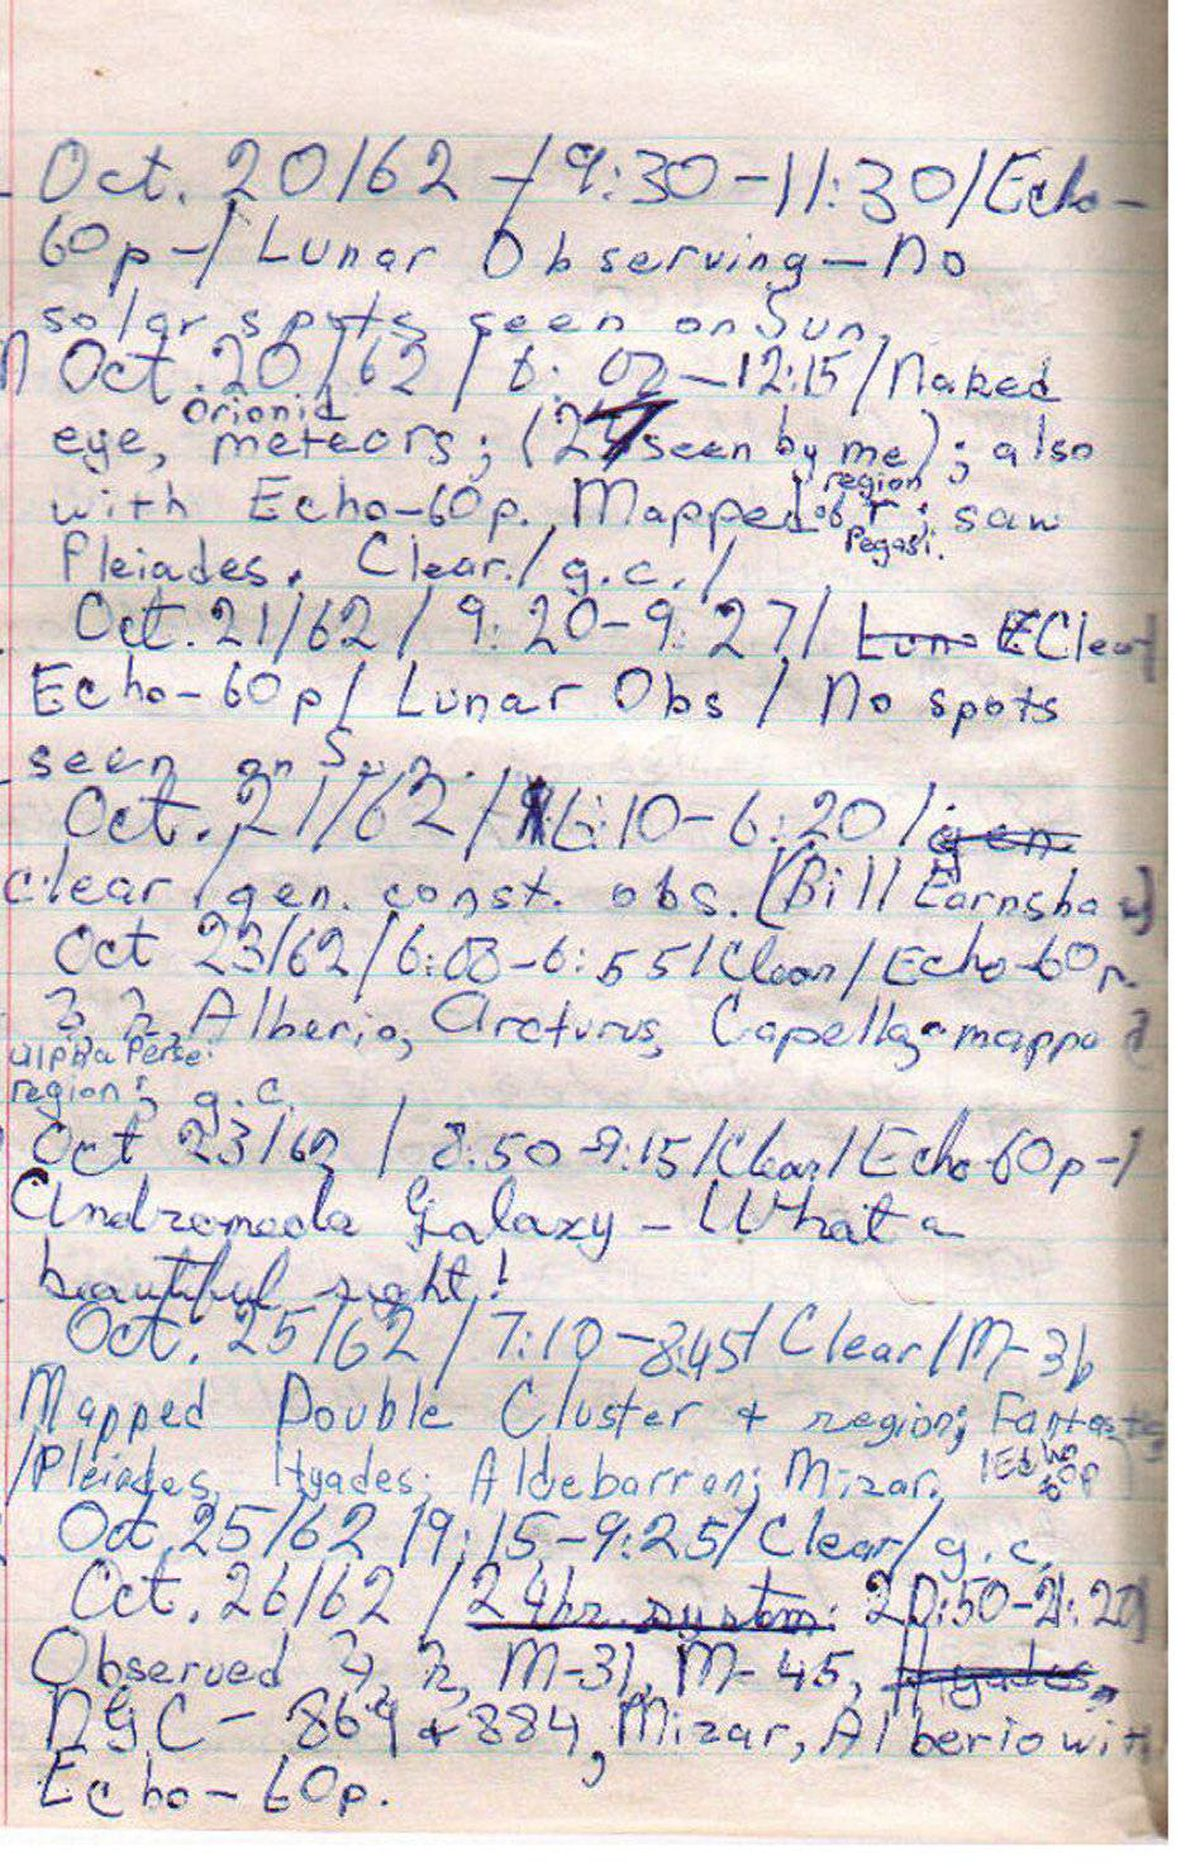 Logbook of: Levy, David H. - Volume 1, Page 3 50SL Oct. 20/62 9:30-11:30/Echo-60p-/Lunar Observing- No solar spots seen on Sun. *50EM Oct.20/62 8:00-12:15/Naked eye, Orionid meteors; (27 seen by me); also with Echo-60p. Mapped region of R Pegasi; saw Pleiades. Clear/g.c. 51SL Oct.21/62 9:20-9:27/Clear/Echo-60p/Lunar Obs/No spots seen on Sun 51E Oct.21/62 6:10-6:20/clear/gen. const. obs. (Bill Earnshaw) *52E Oct 23/62/6:00-6:55/Clear/Echo-60p Jupiter, Saturn, Alberio, Arcturus, Capella, mapped Alpha Persei region, g.c. 52E2 Oct 23/60/8:50-9:15/Clear/Echo-60p-/Andromeda Galaxy-What a beautiful sight! *53E Oct.25/62/7:10-8:45/Clear/M-31, Mapped Double Cluster + region; Fantastic/Pleiades, Hyades; Albdebaran, Mizar. Echo-80p. 53E2 Oct 25/62/9:15-9:25/Clear/g.c. 54E Oct.26/62/20:50-21:20 Observed Jupiter, Saturn, M-31, M-45, NGC-869+884, Mizar, Alberio with Echo-60p.